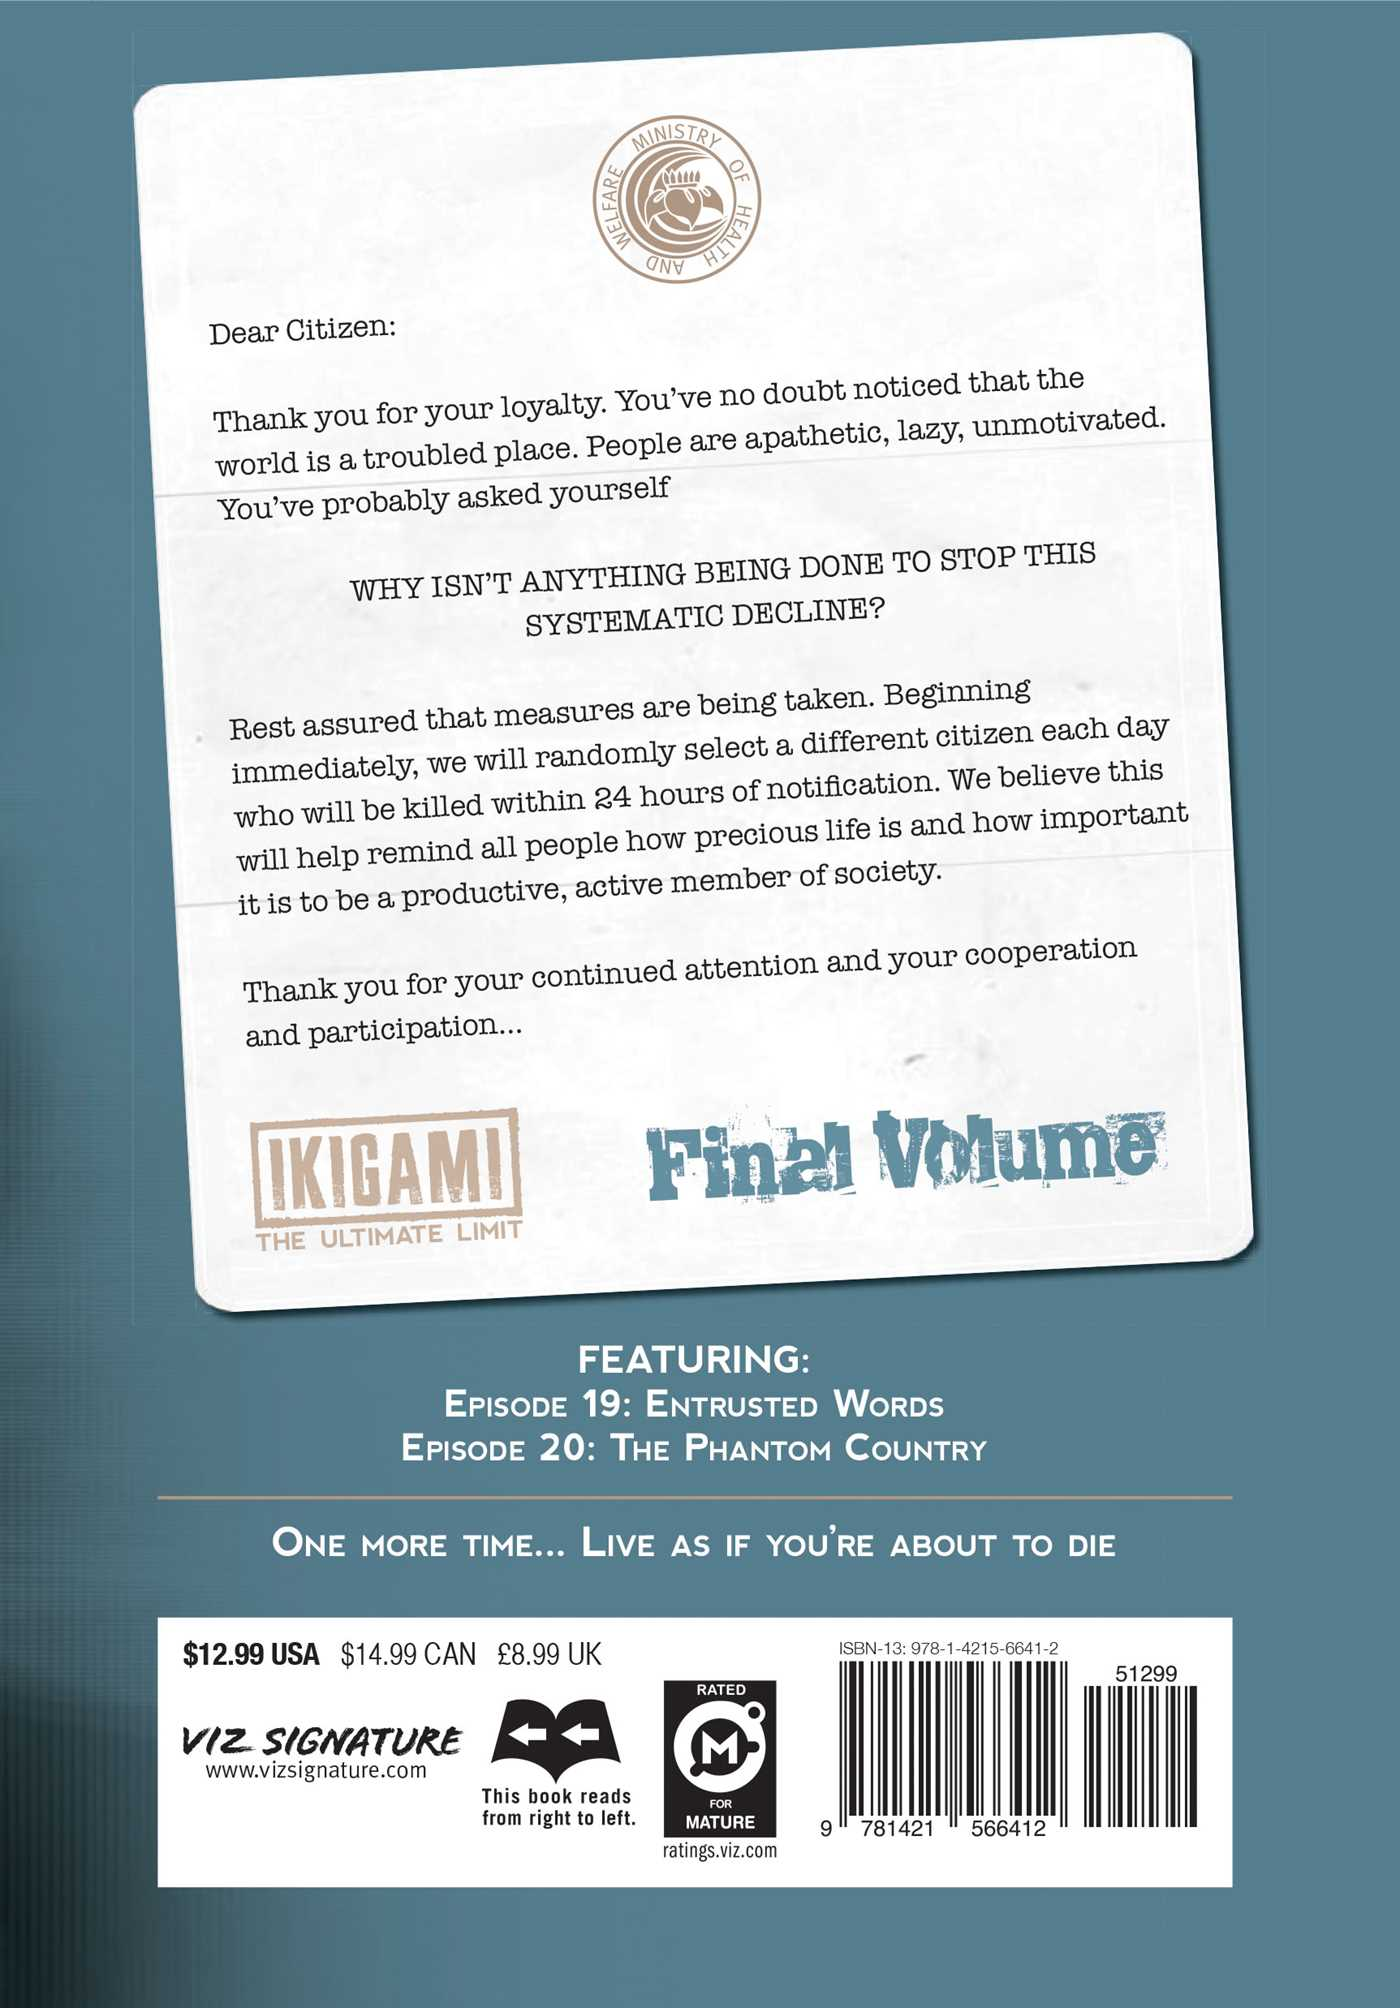 Ikigami-the-ultimate-limit-vol-10-9781421566412_hr-back